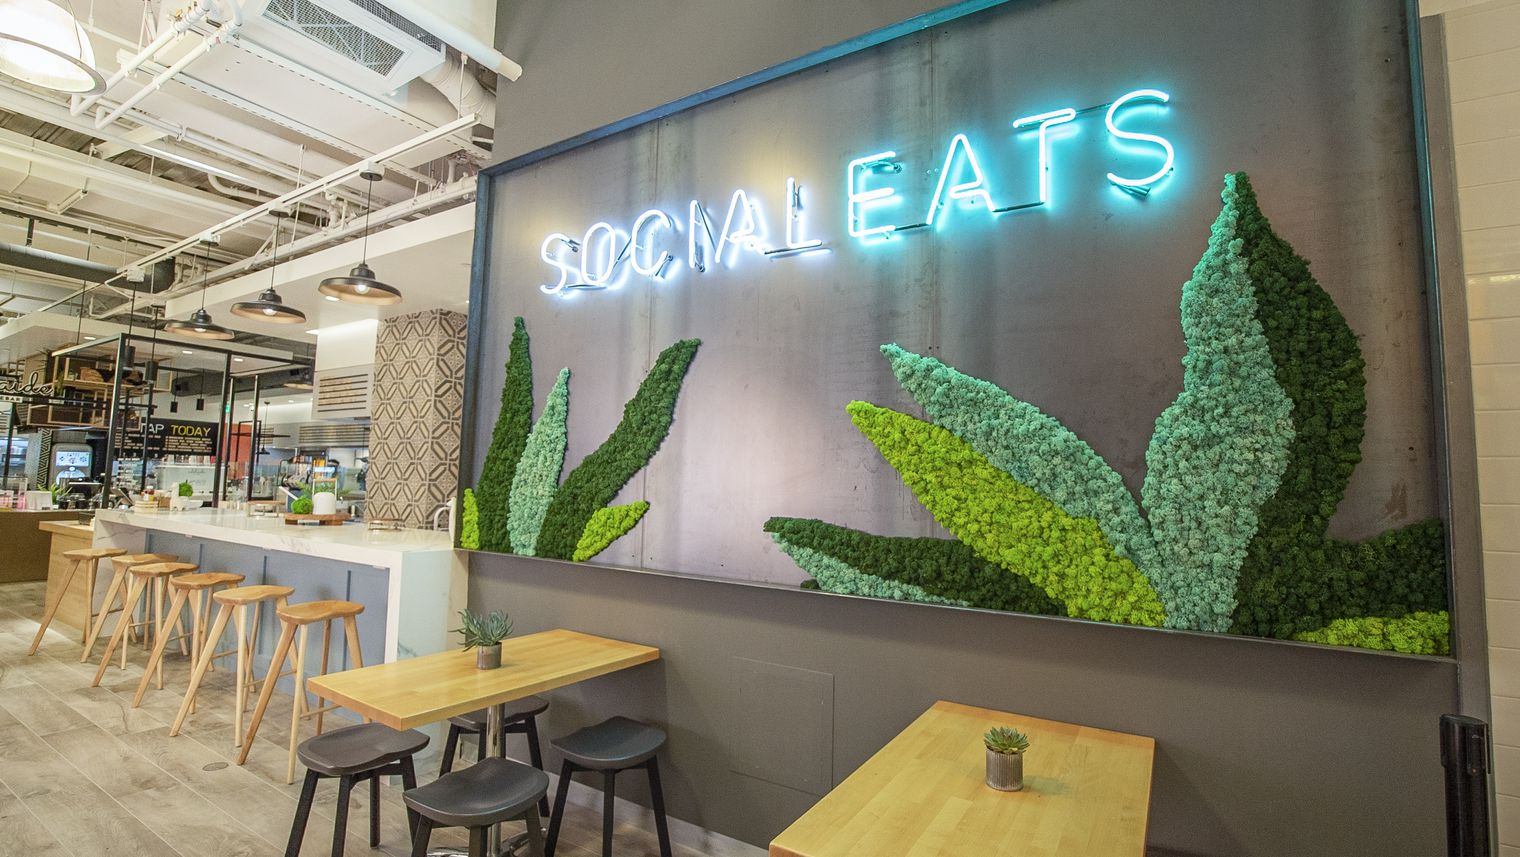 A NEW Food HALL FOR THE CURIOUS - On the first floor of The Gallery in Santa Monica